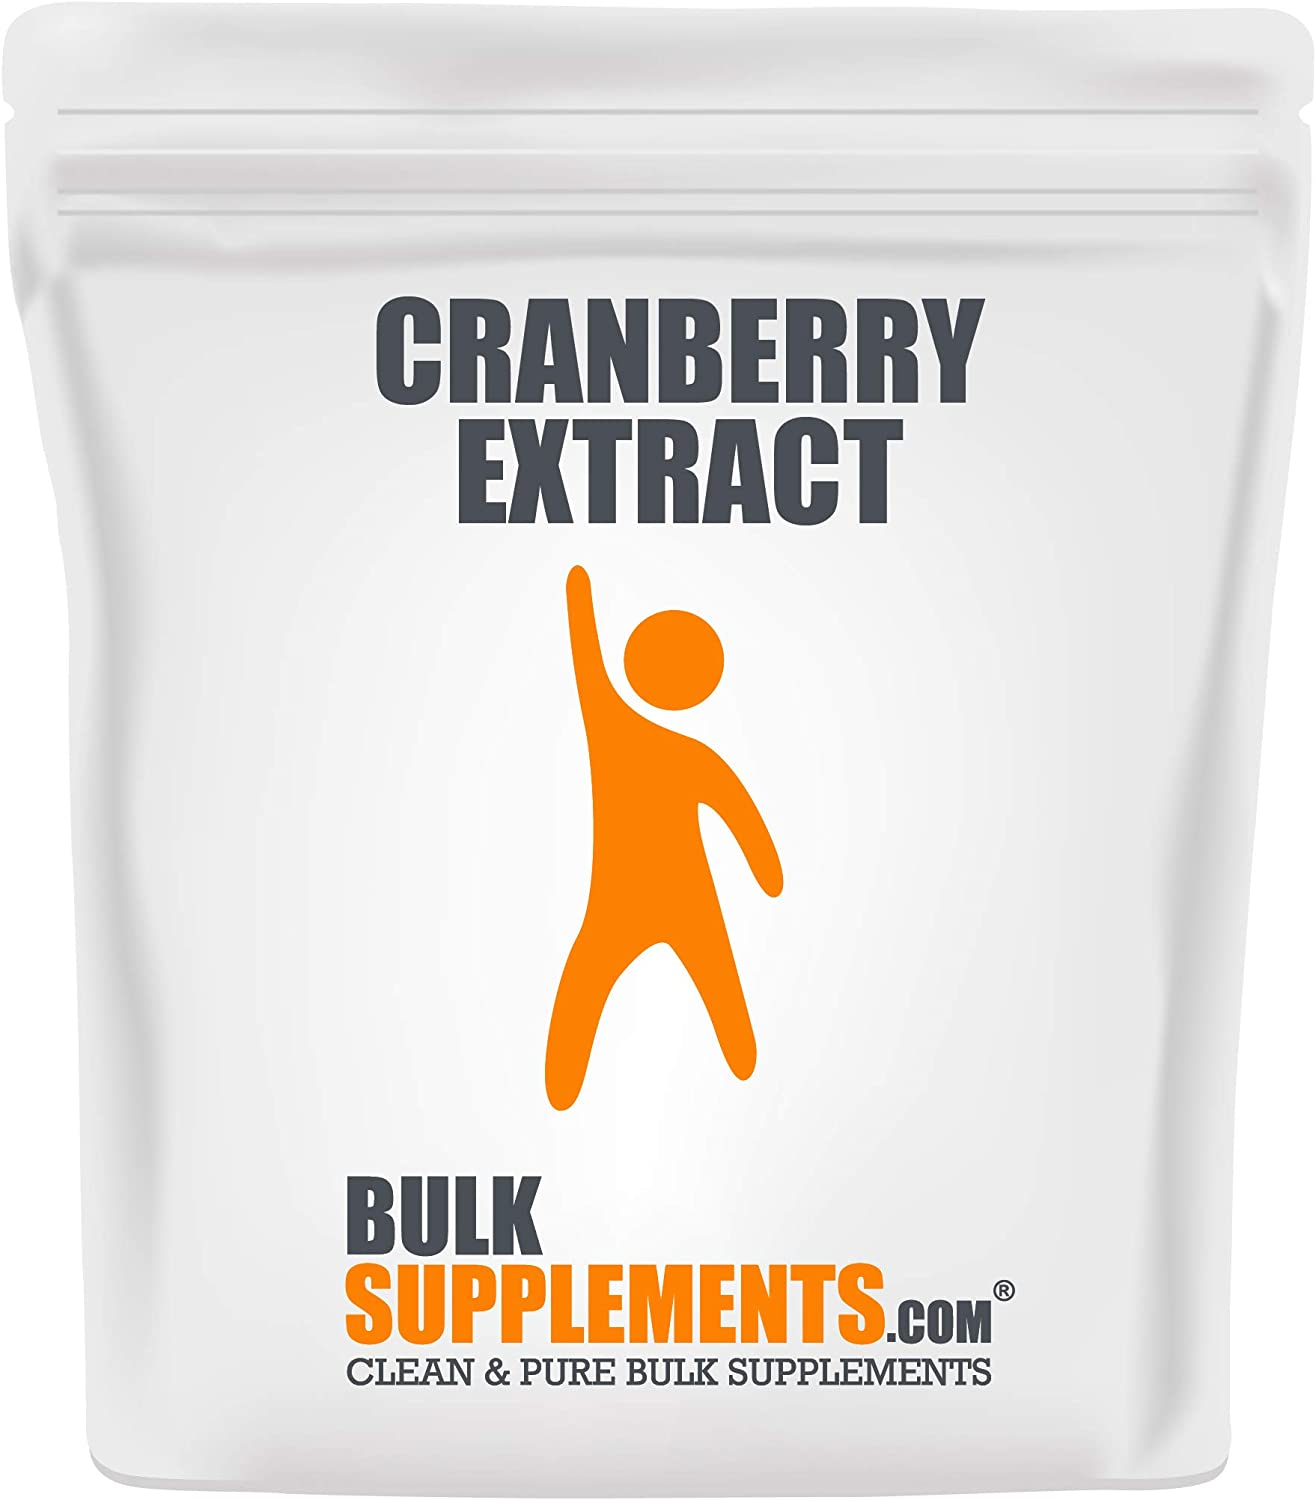 BulkSupplements.com Challenge the lowest price of Japan ☆ Cranberry Extract Powder Supplem - Store